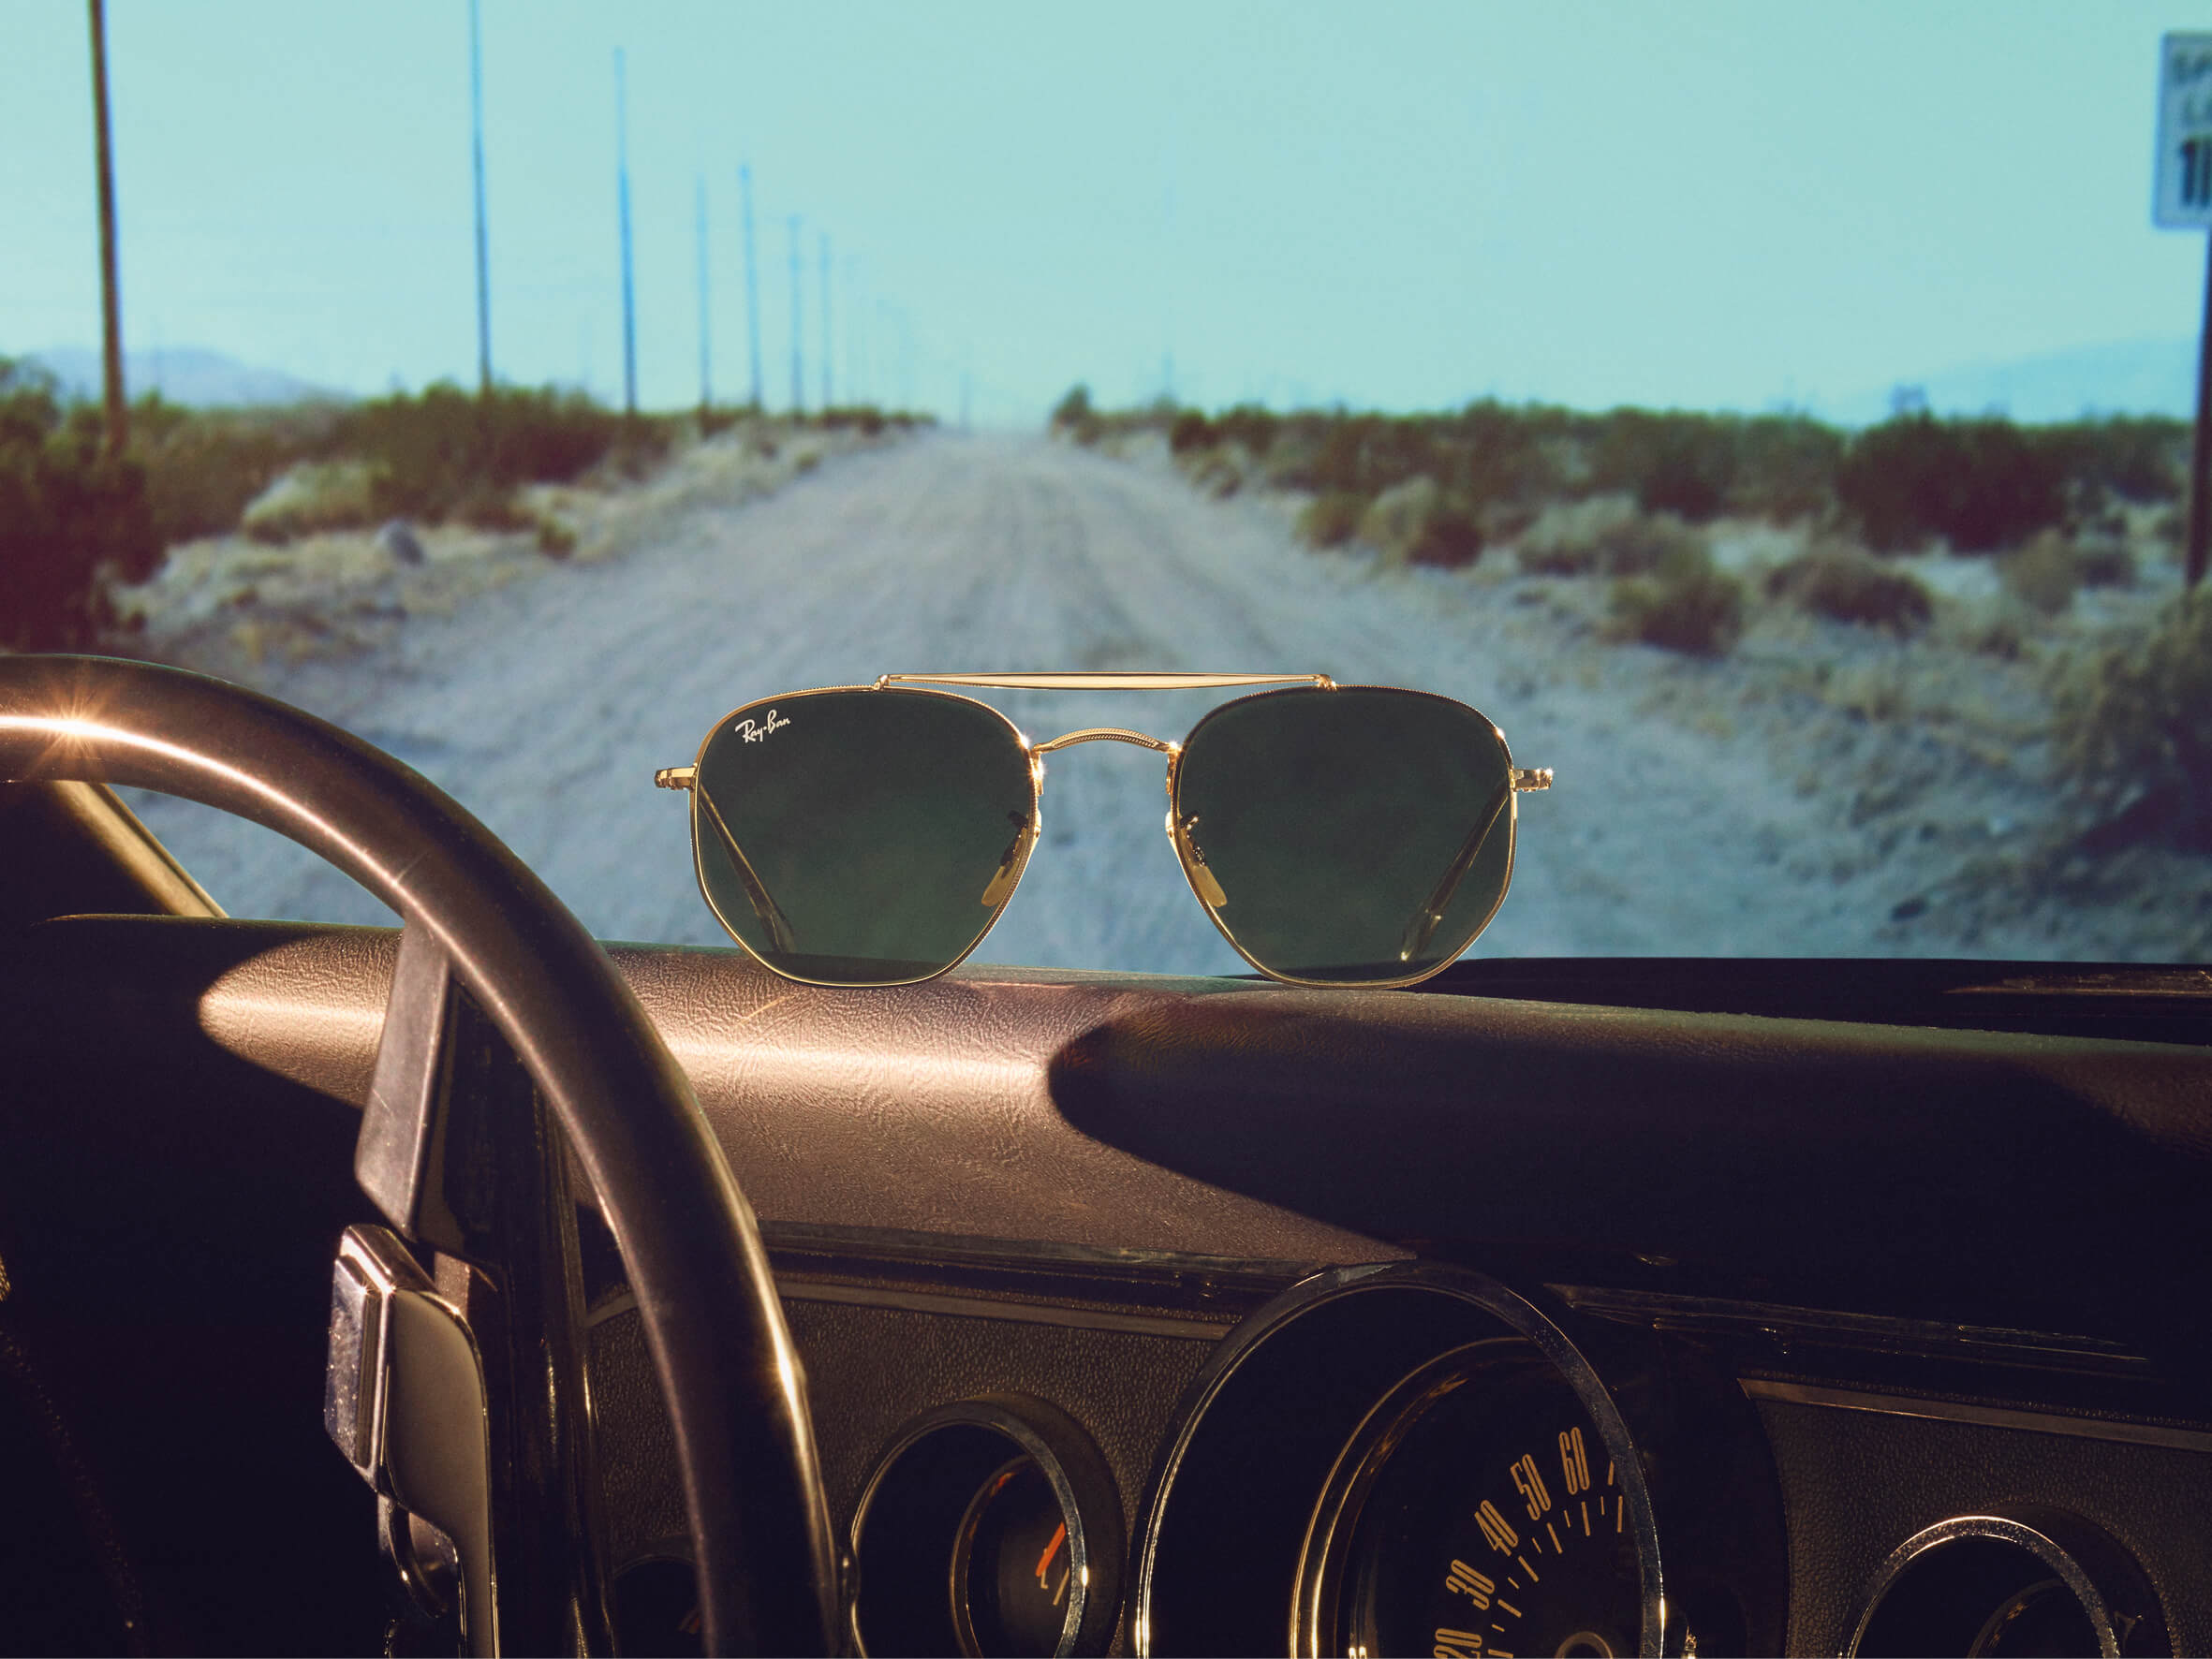 1d1a99cb4fc01 Chase the Horizon in Ray-Ban s New Campaign - Men s Folio